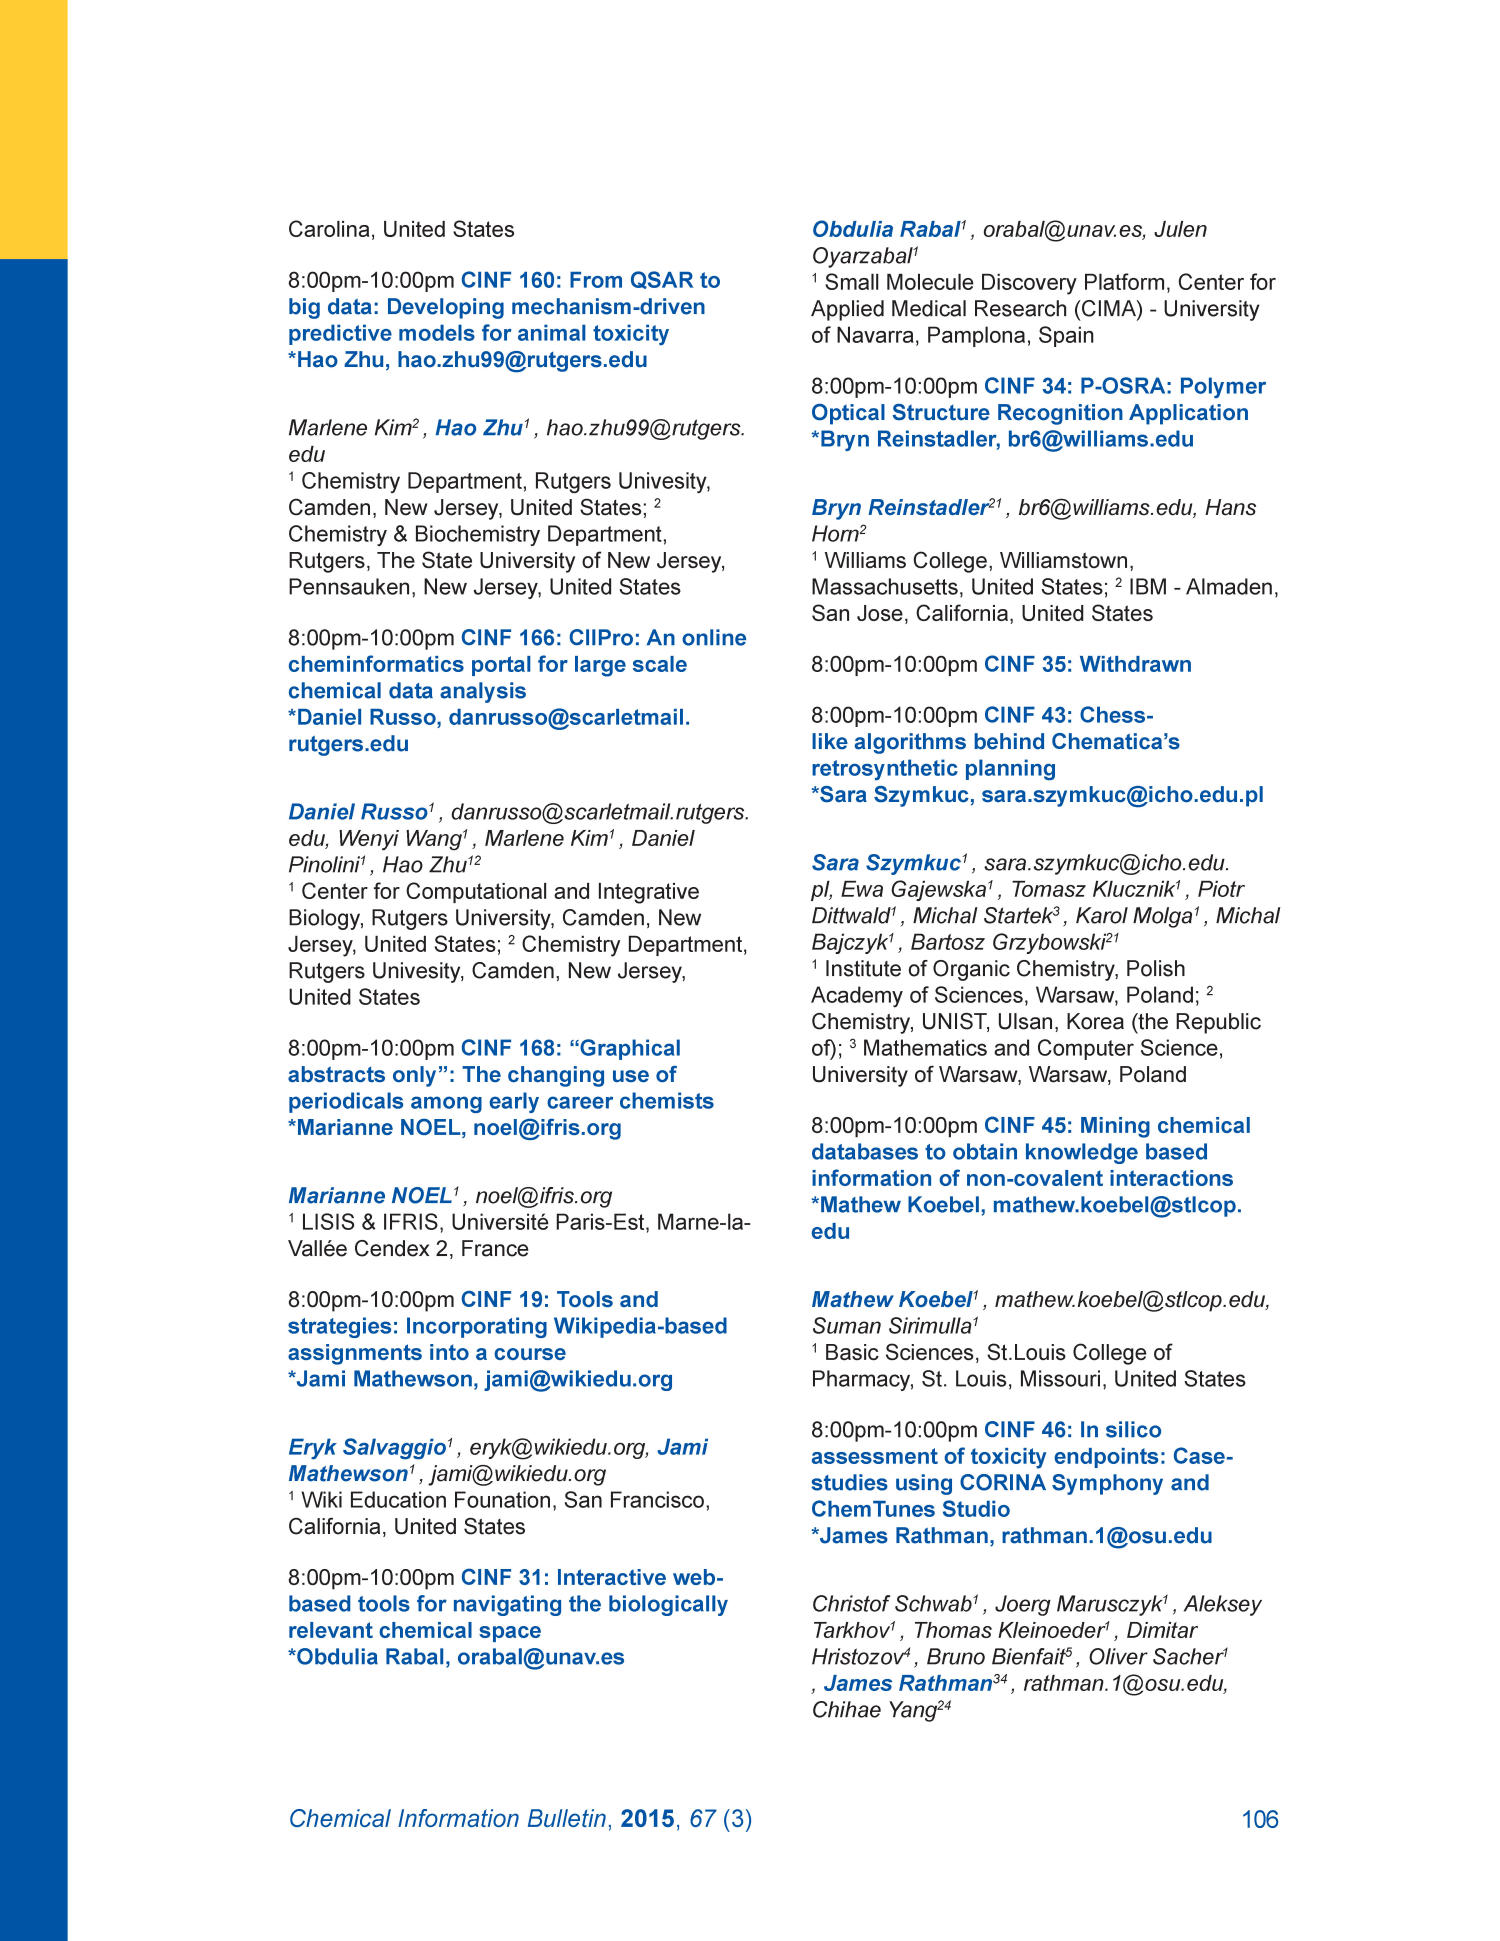 Chemical Information Bulletin, Volume 67, Number 3, Fall